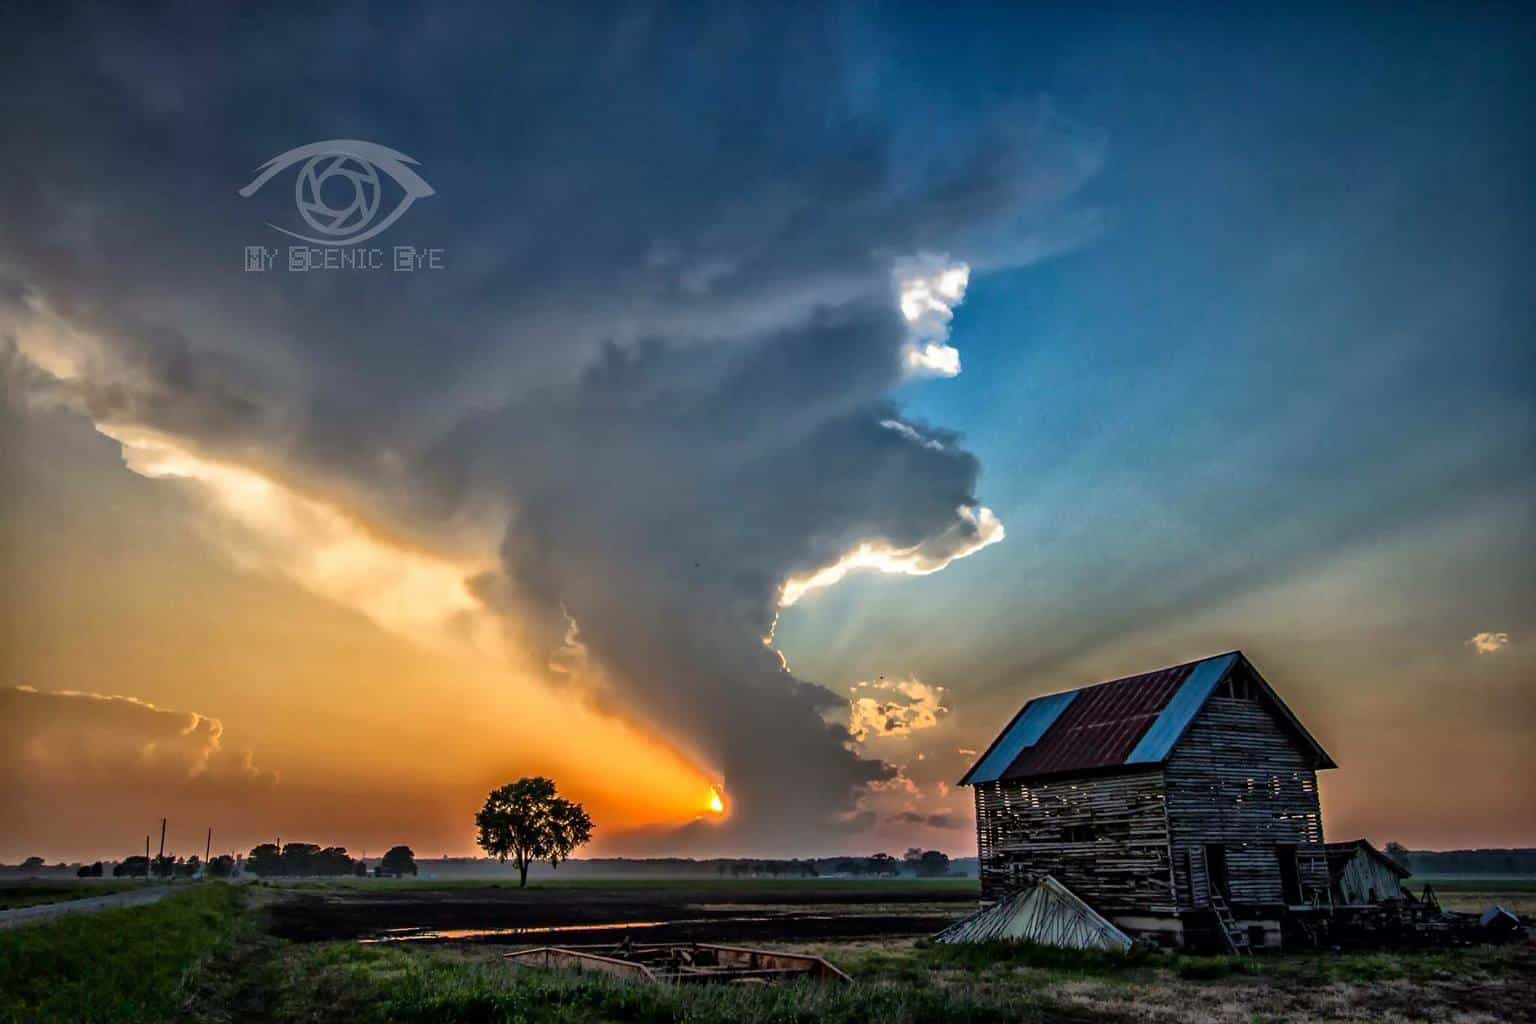 The little storm that couldn't. This was shot tonight in East Cape Girardeau IL. as the sun was setting. A perfect ending to a long day!!